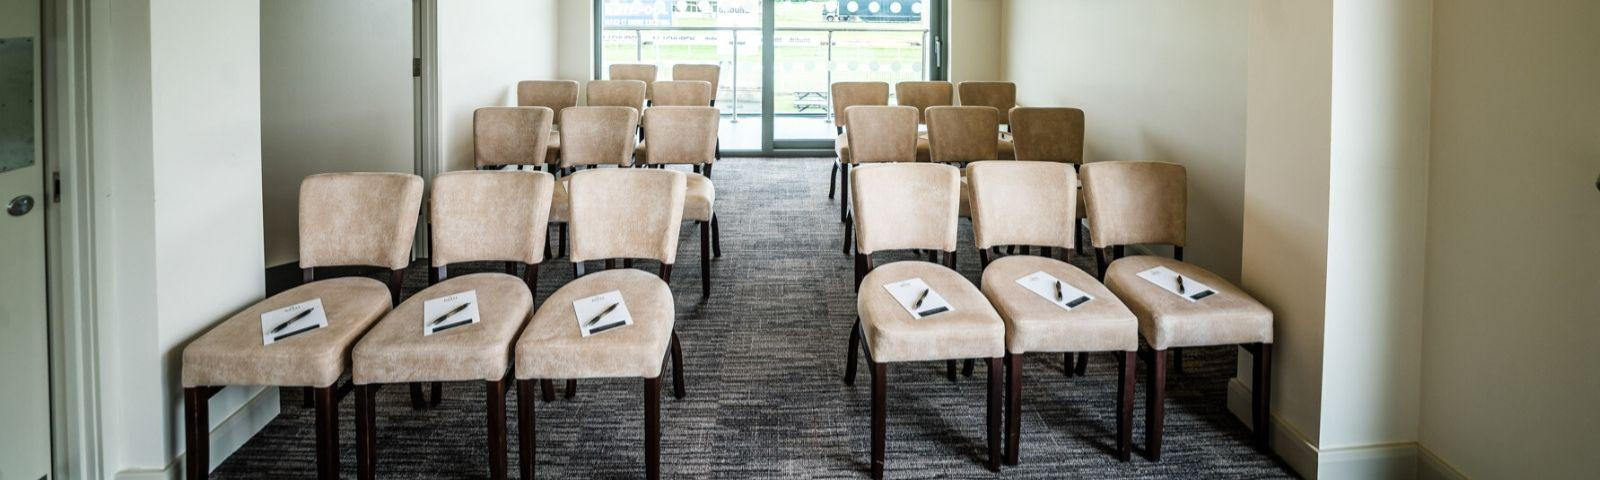 Conference Rooms at Bath Racecourse